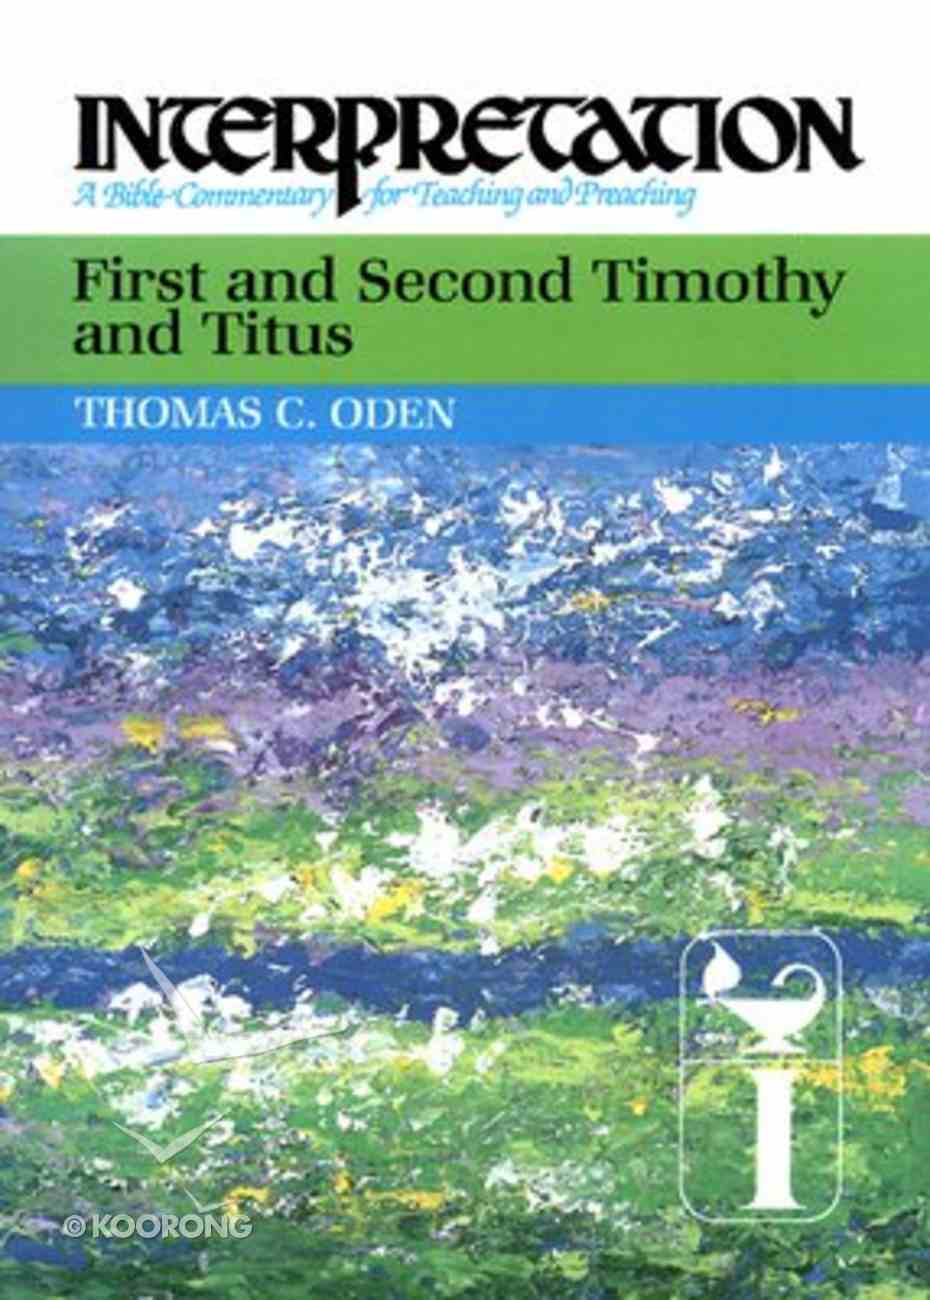 First and Second Timothy and Titus (Interpretation Bible Commentaries Series) Paperback